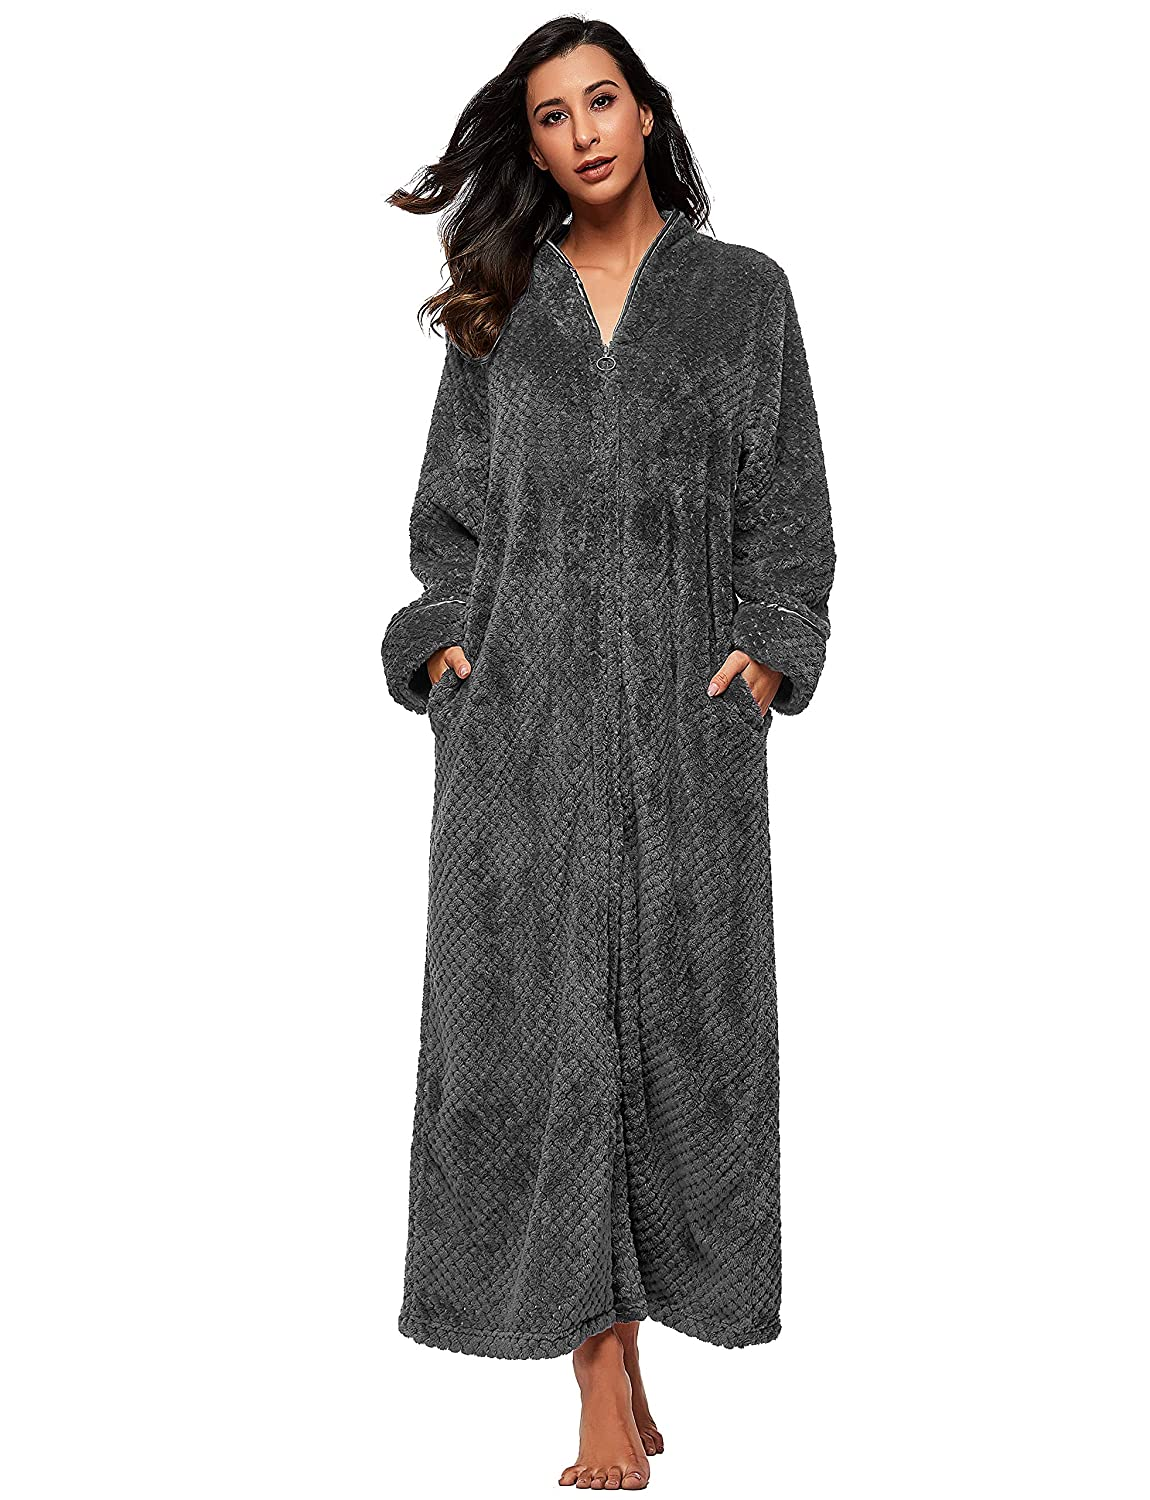 SEEU Women Soft Fleece Bathrobe with Zip Full Length Fluffy Dressing Gown  with 2 Side Pockets at Amazon Women s Clothing store  f126b5d35